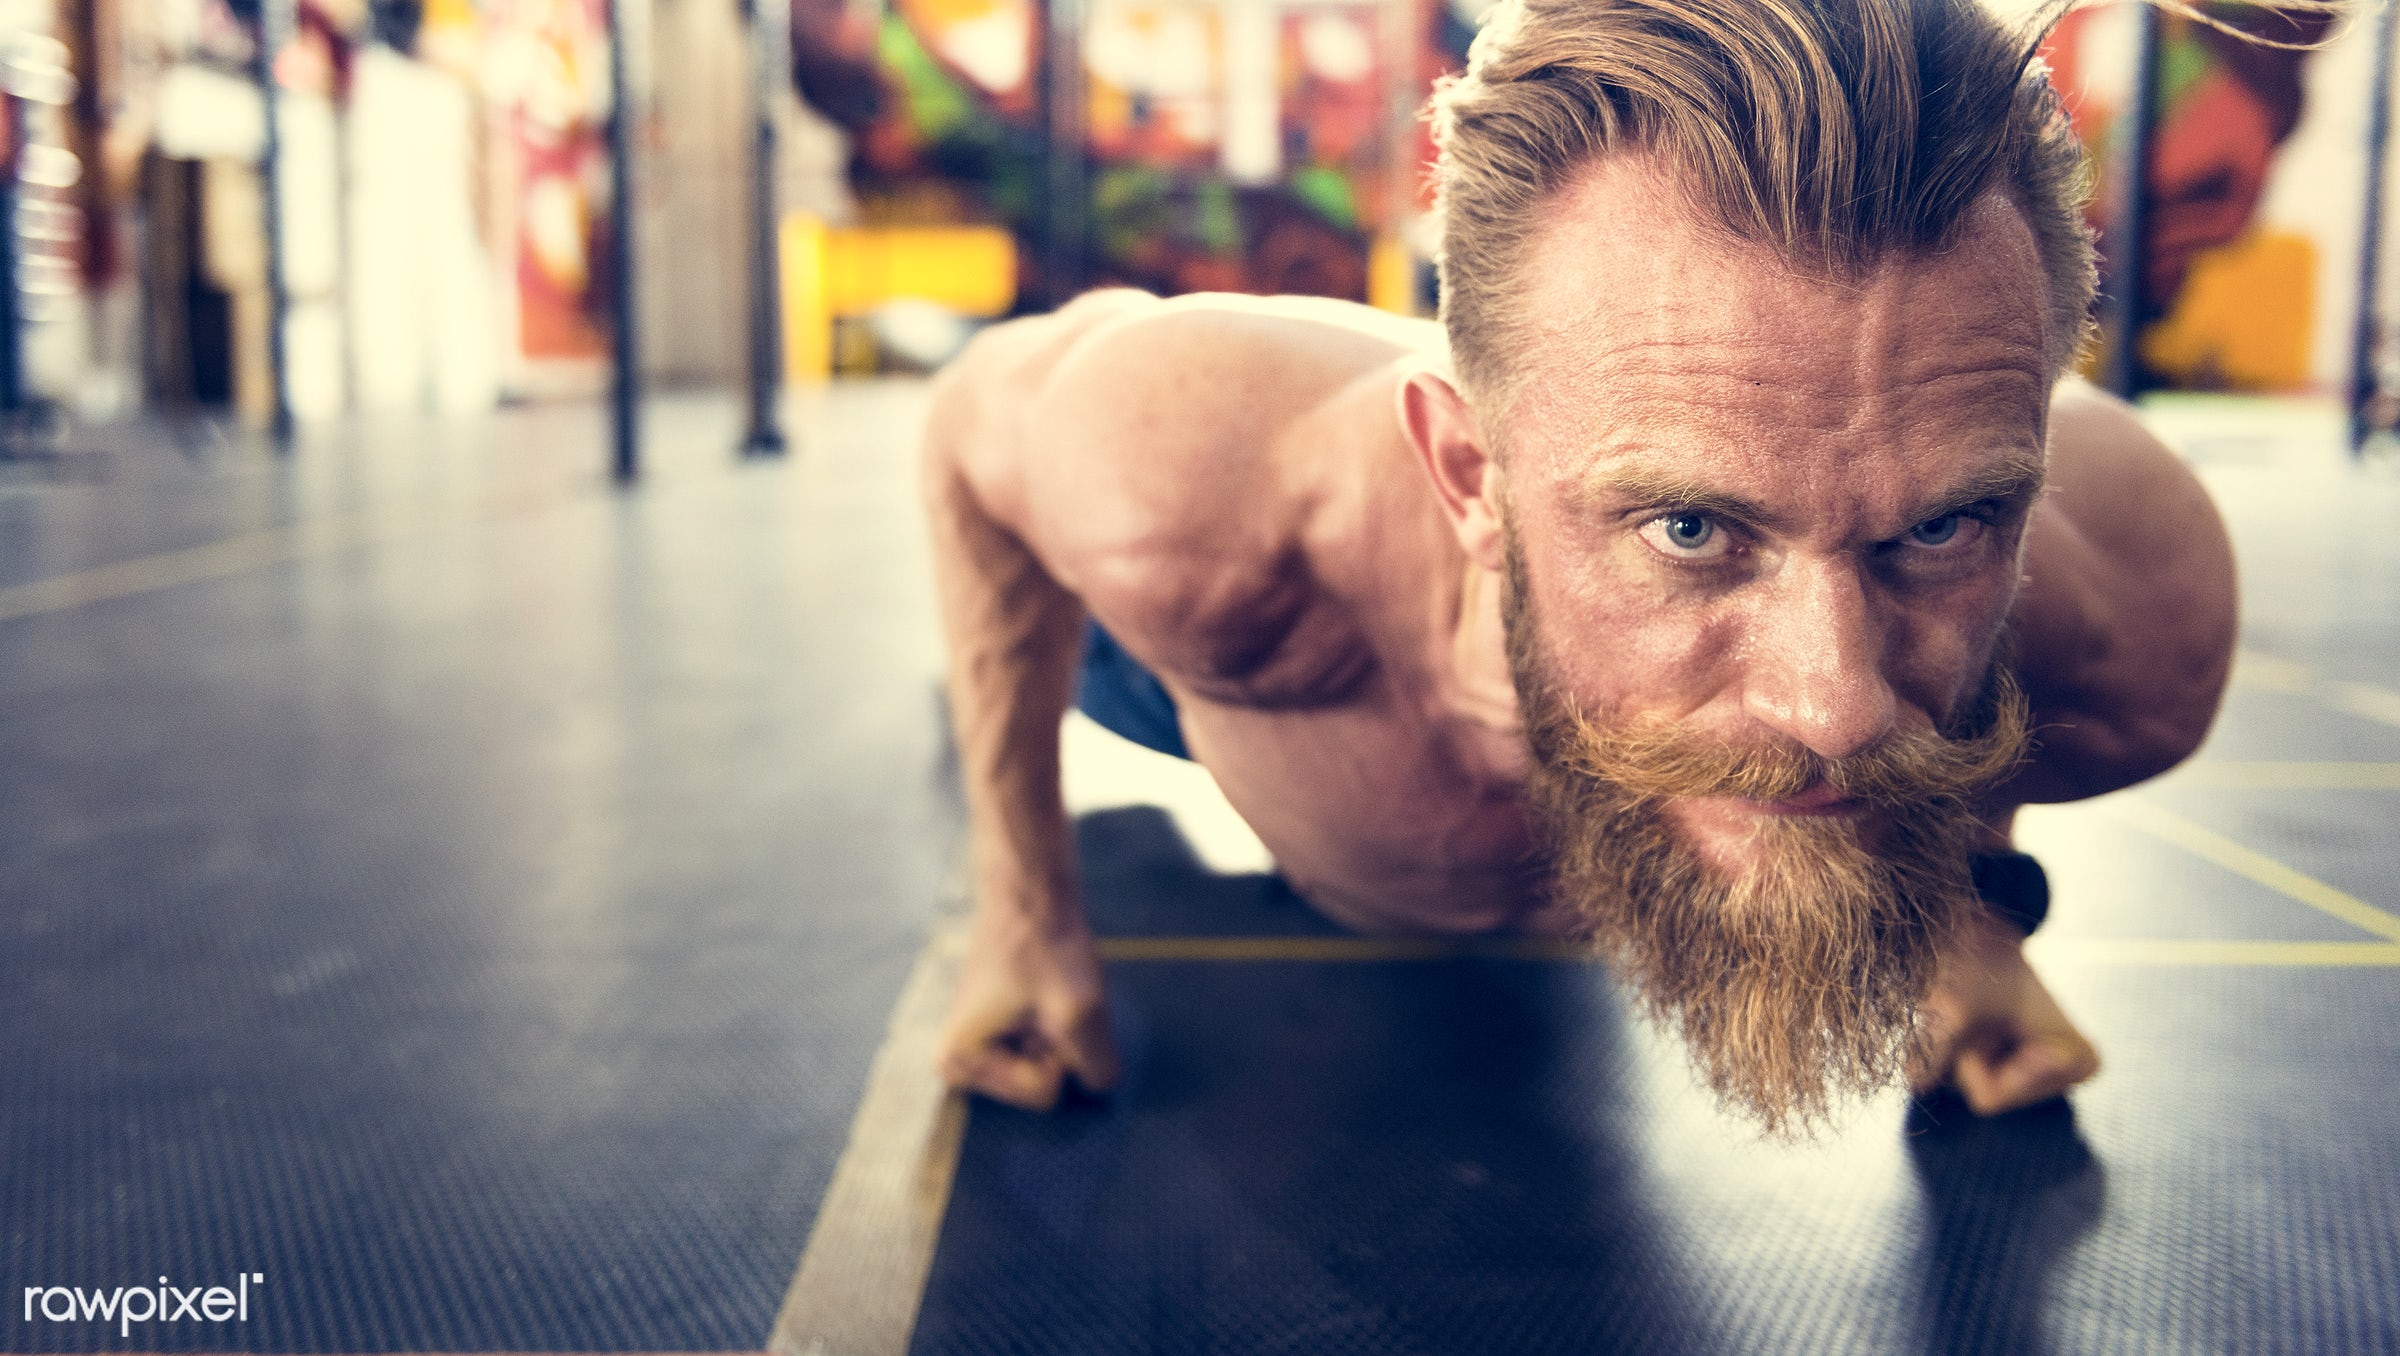 At the gym - active, activity, athlete, athletic, bearded, body, buff, caucasian, equipment, exercise, fit, fitness, gym,...